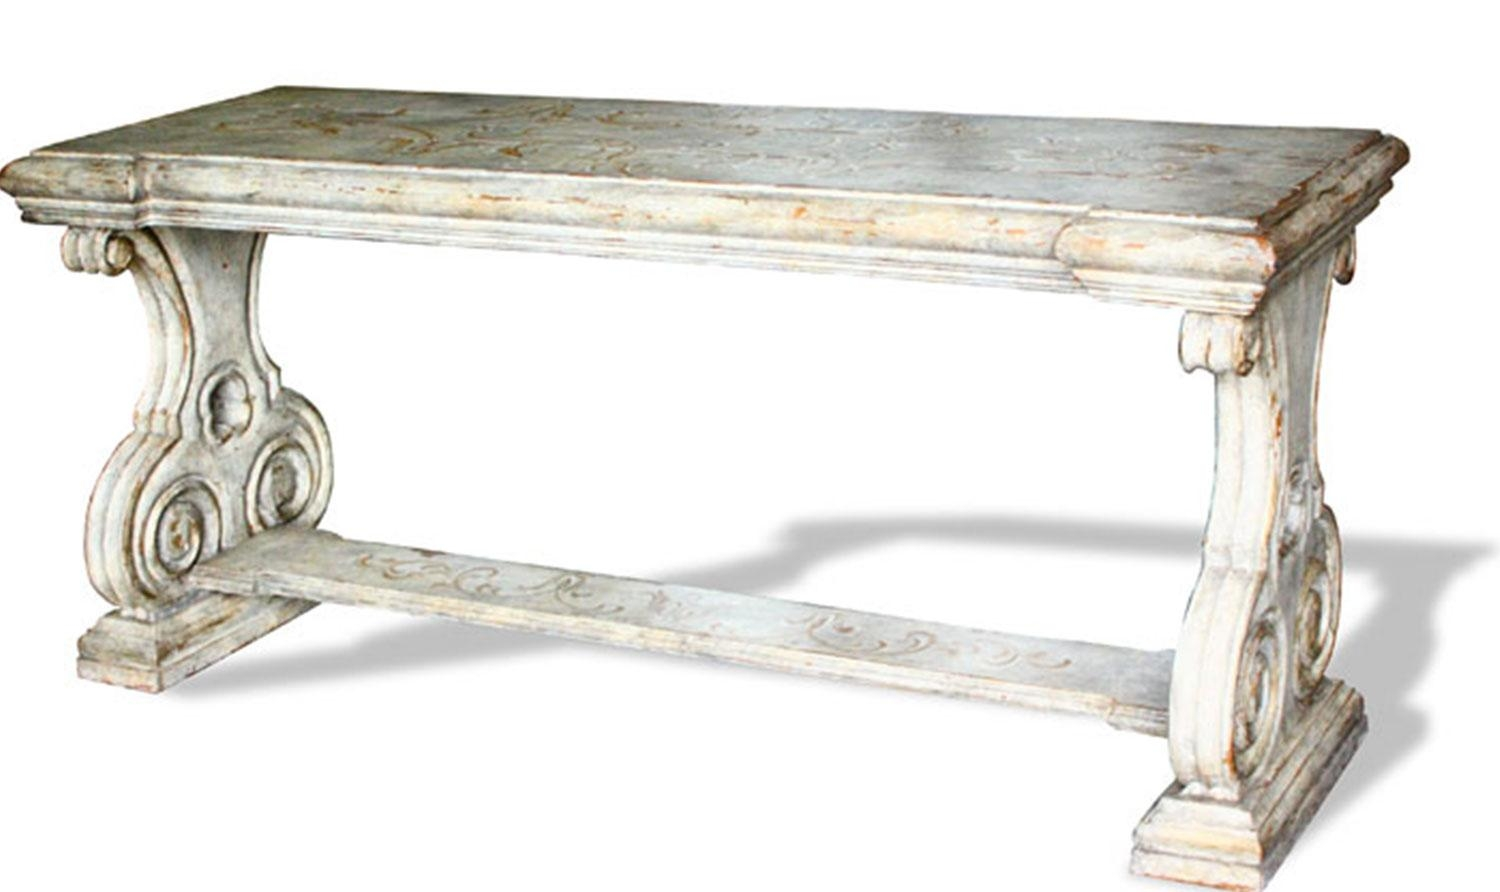 French Country Sofa Table Romana | The Koenig Collection – Unique Regarding Country Sofa Tables (View 3 of 20)